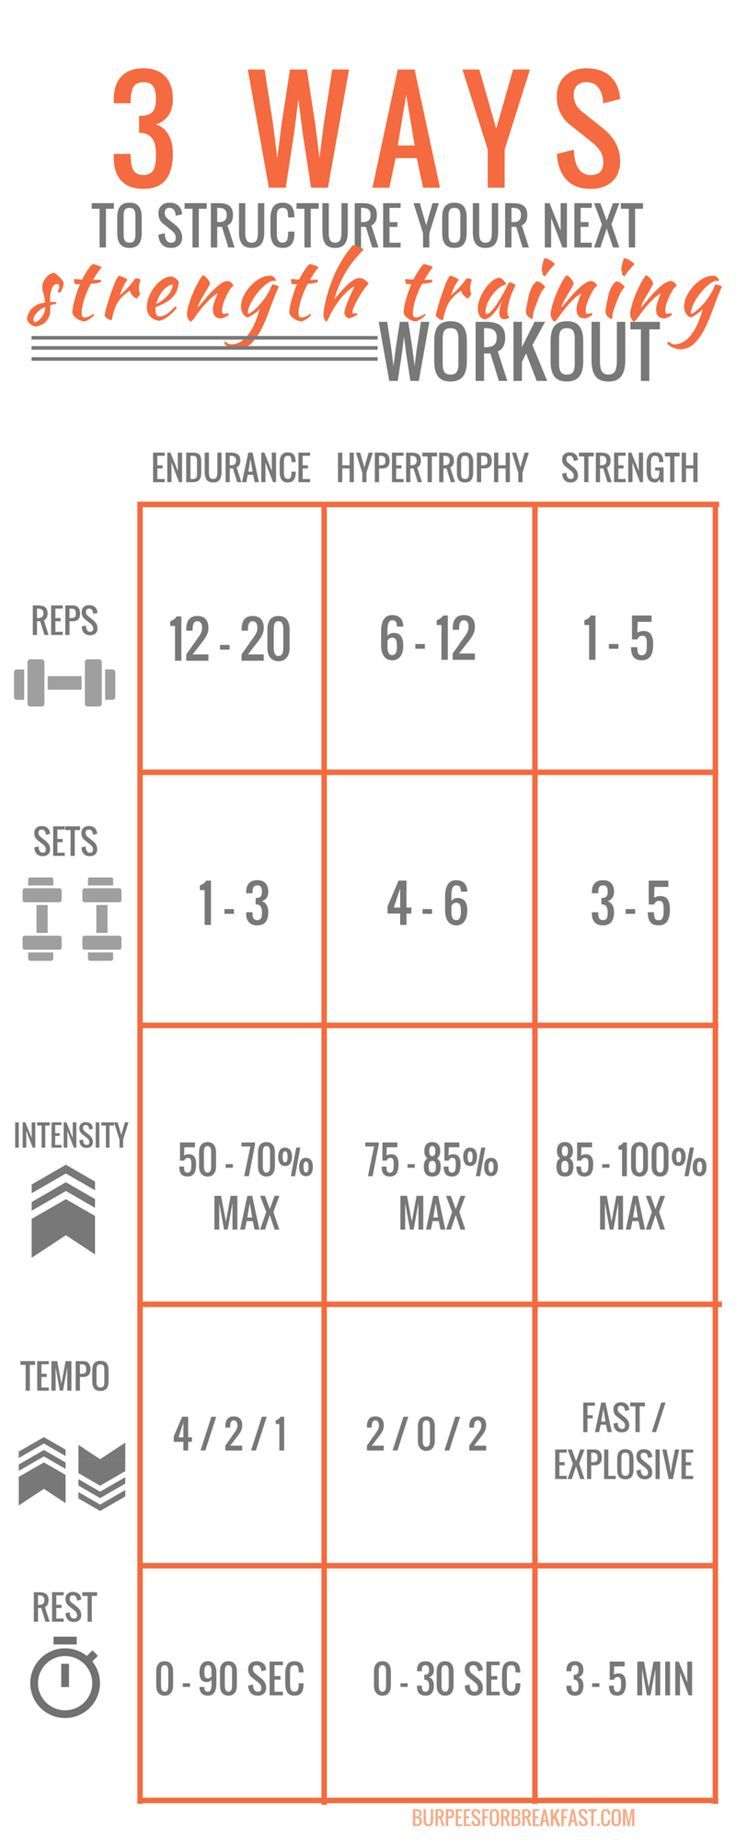 Strength training workout 3 ways to structure your next one strength training workout 3 ways to structure your next one weight lifting chartweight nvjuhfo Choice Image